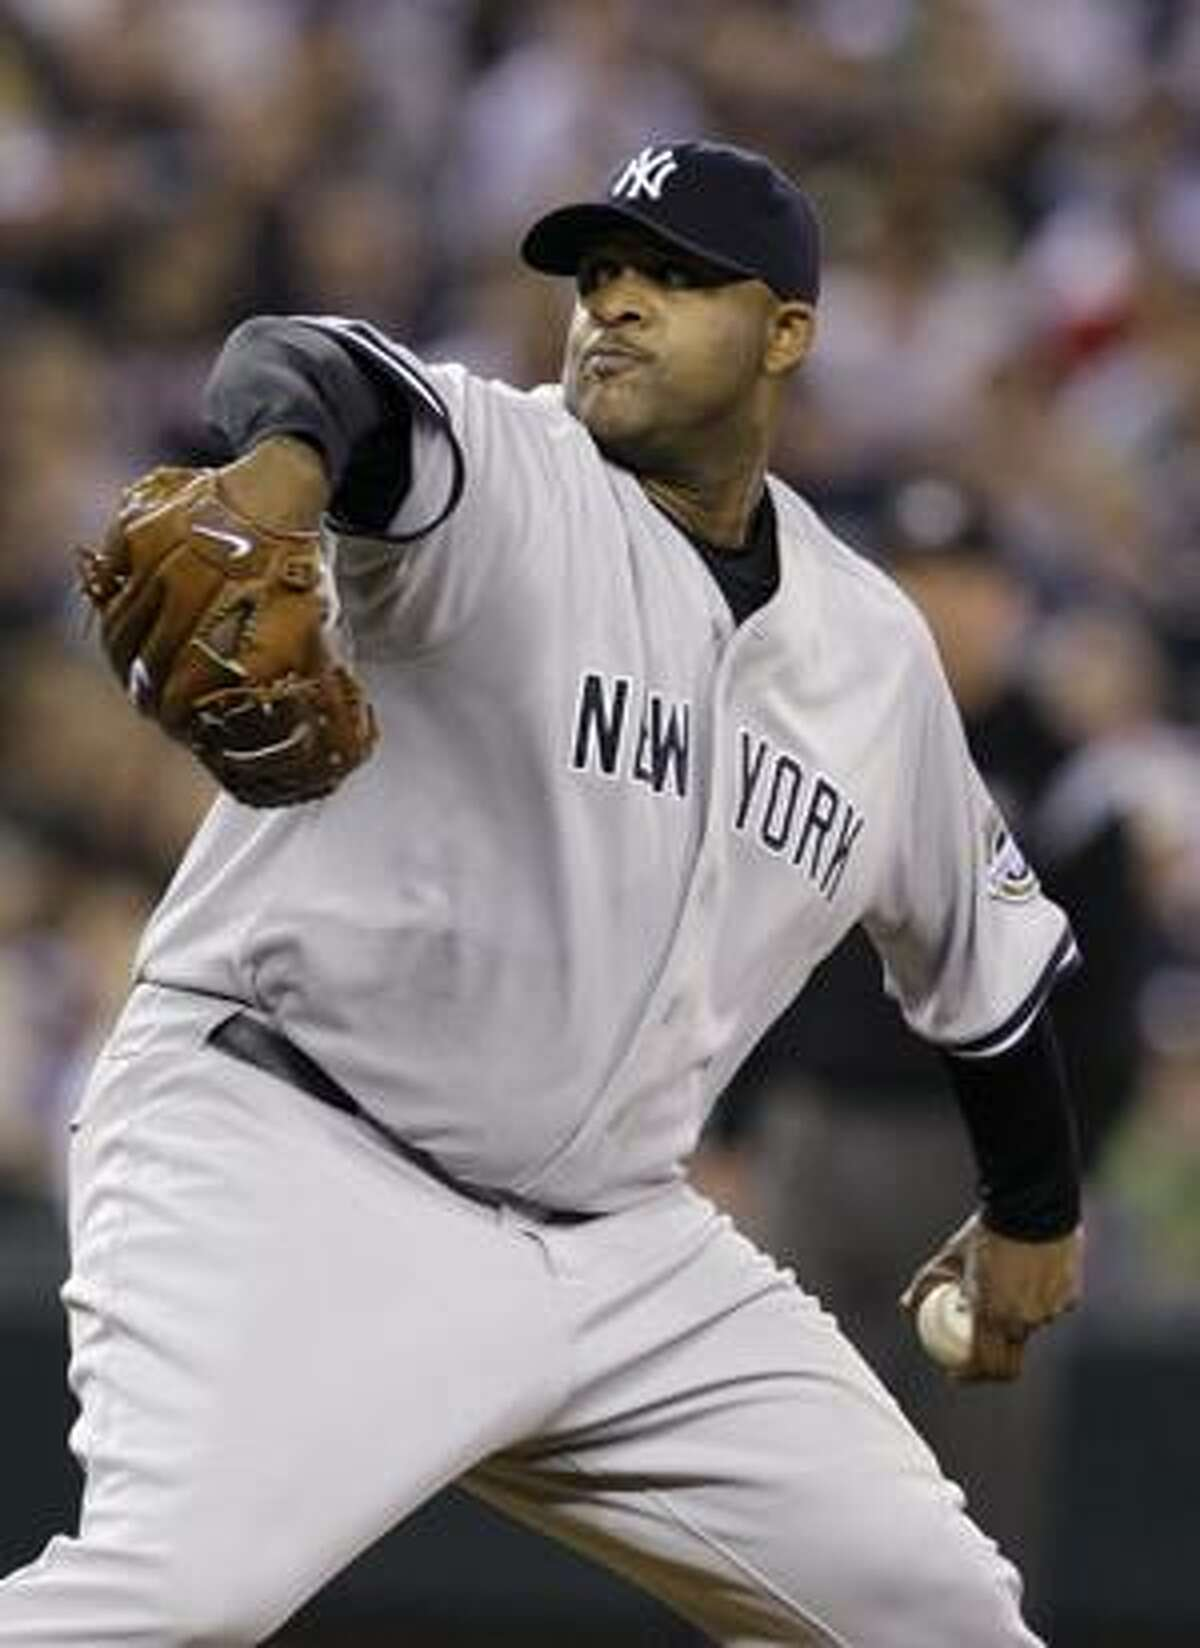 AP New York Yankees starting pitcher CC Sabathia throws a pitch against the Seattle Mariners in the second inning of an Aug. 13 game.